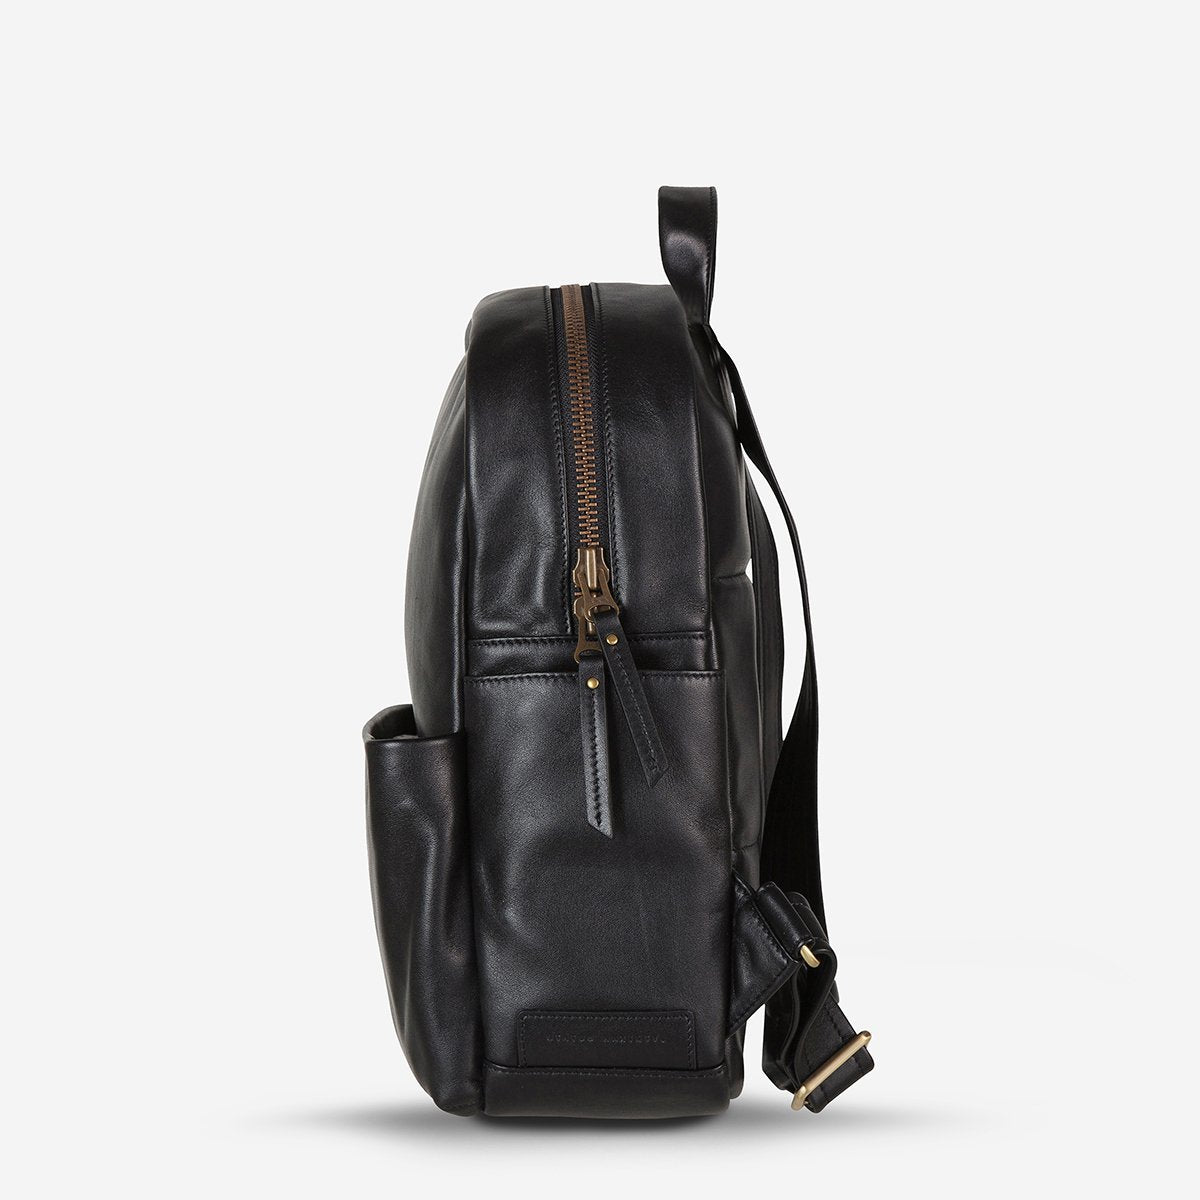 Status Anxiety People Like Us Leather Backpack - Black